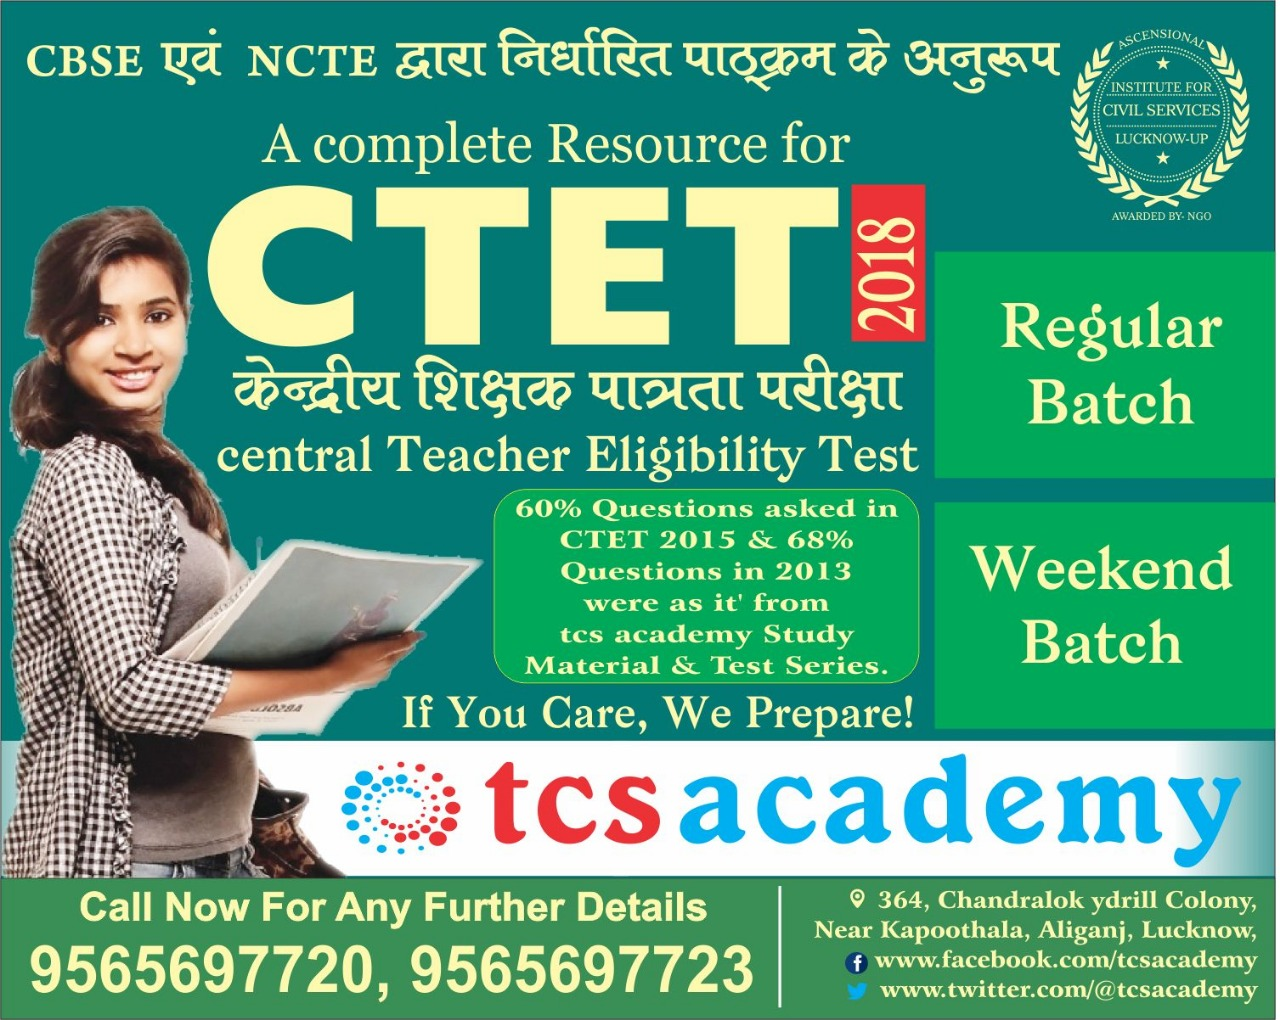 CTET Coaching in Lucknow - TCS ACADEMY - 9565697720